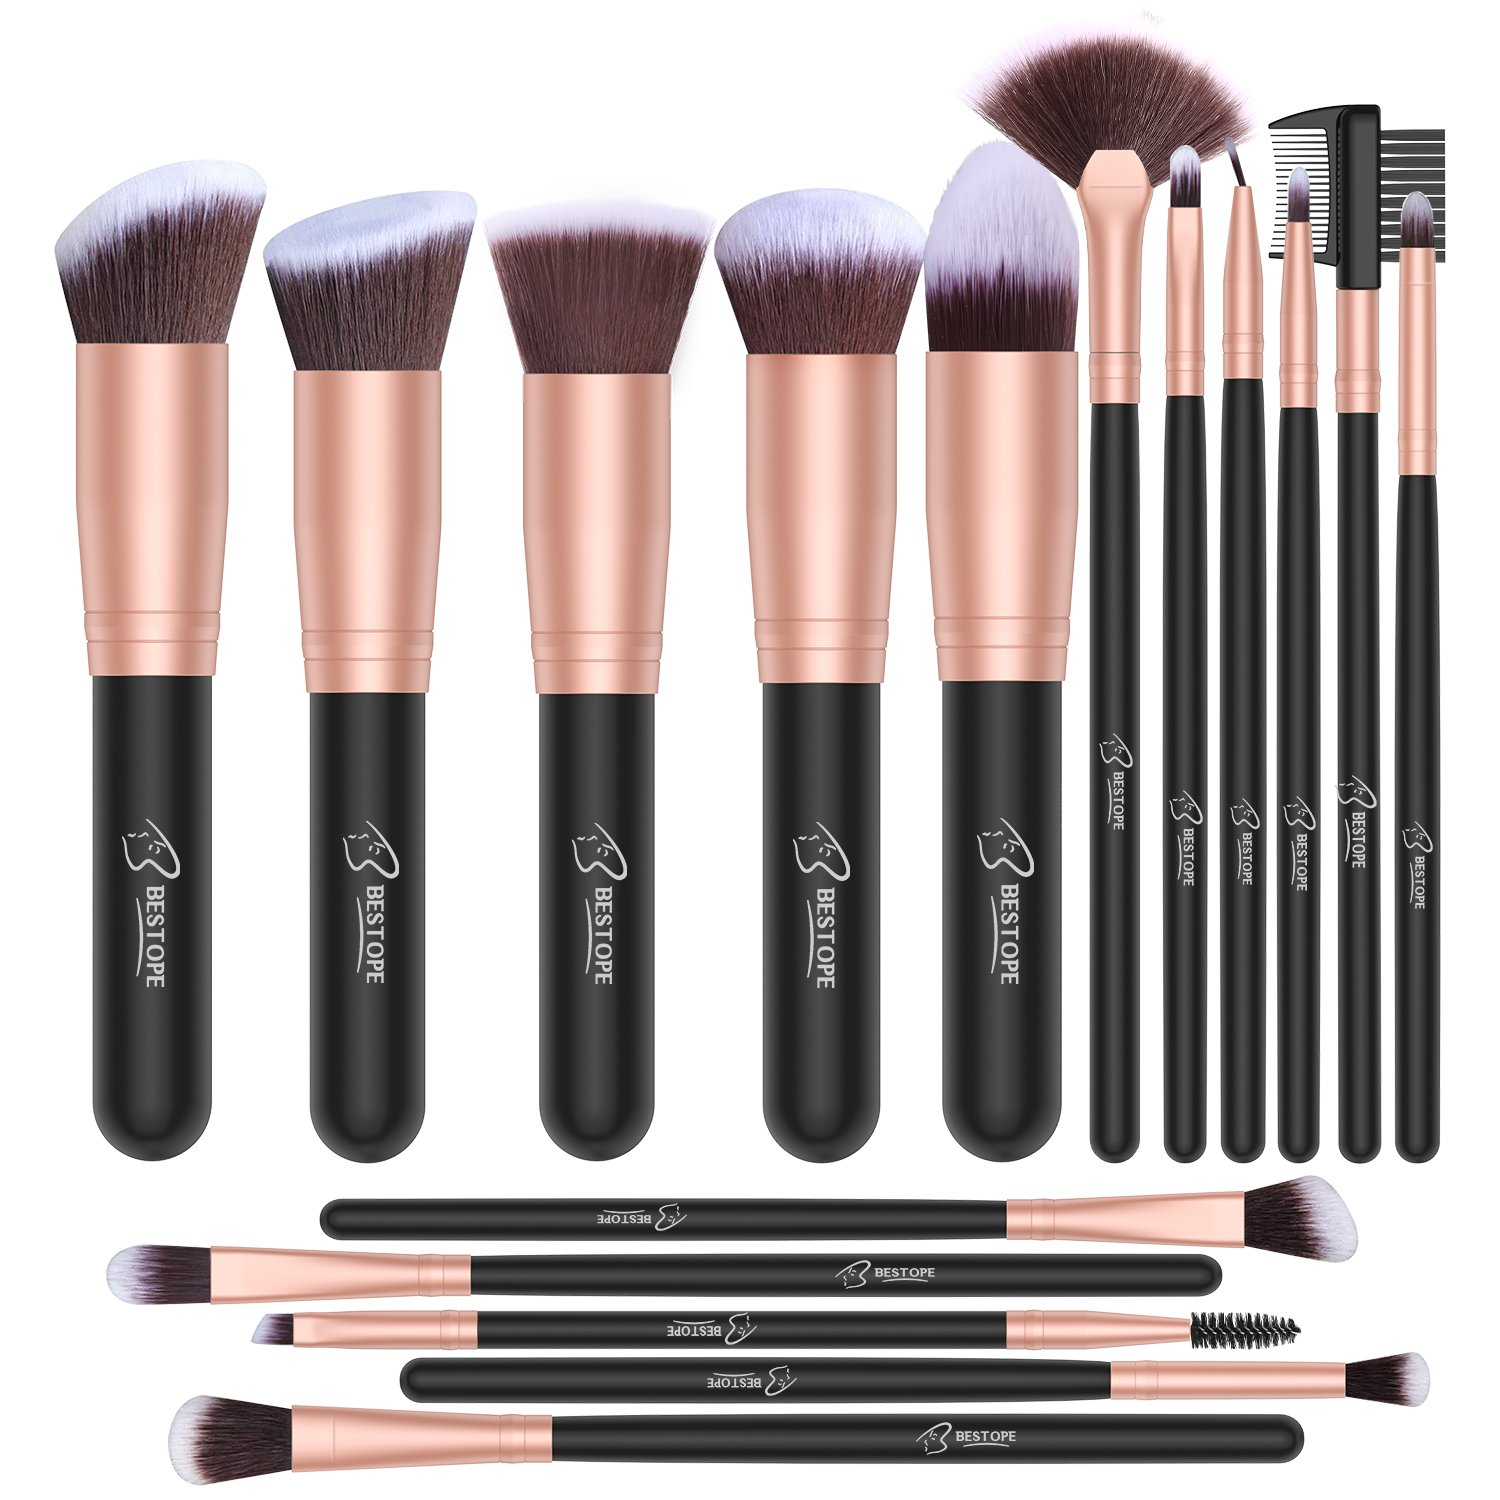 The 6 Best Makeup Brushes on Amazon